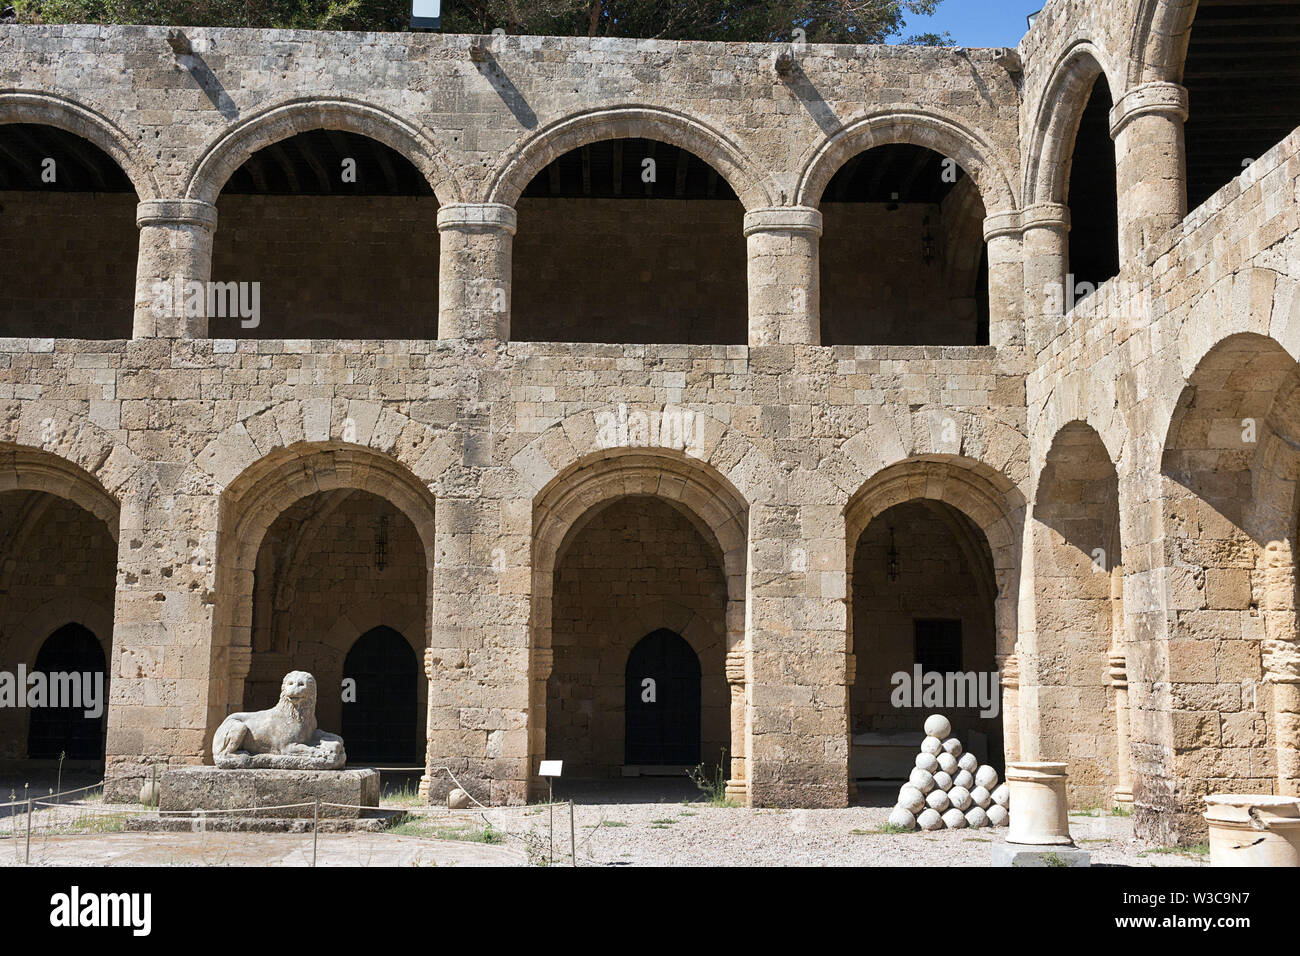 Rhodes Old City - Archaeological museum, old Hospital of the Knights. Courtyard surrounded by a galleries, lion statue and stacks of cannon balls. Dod - Stock Image